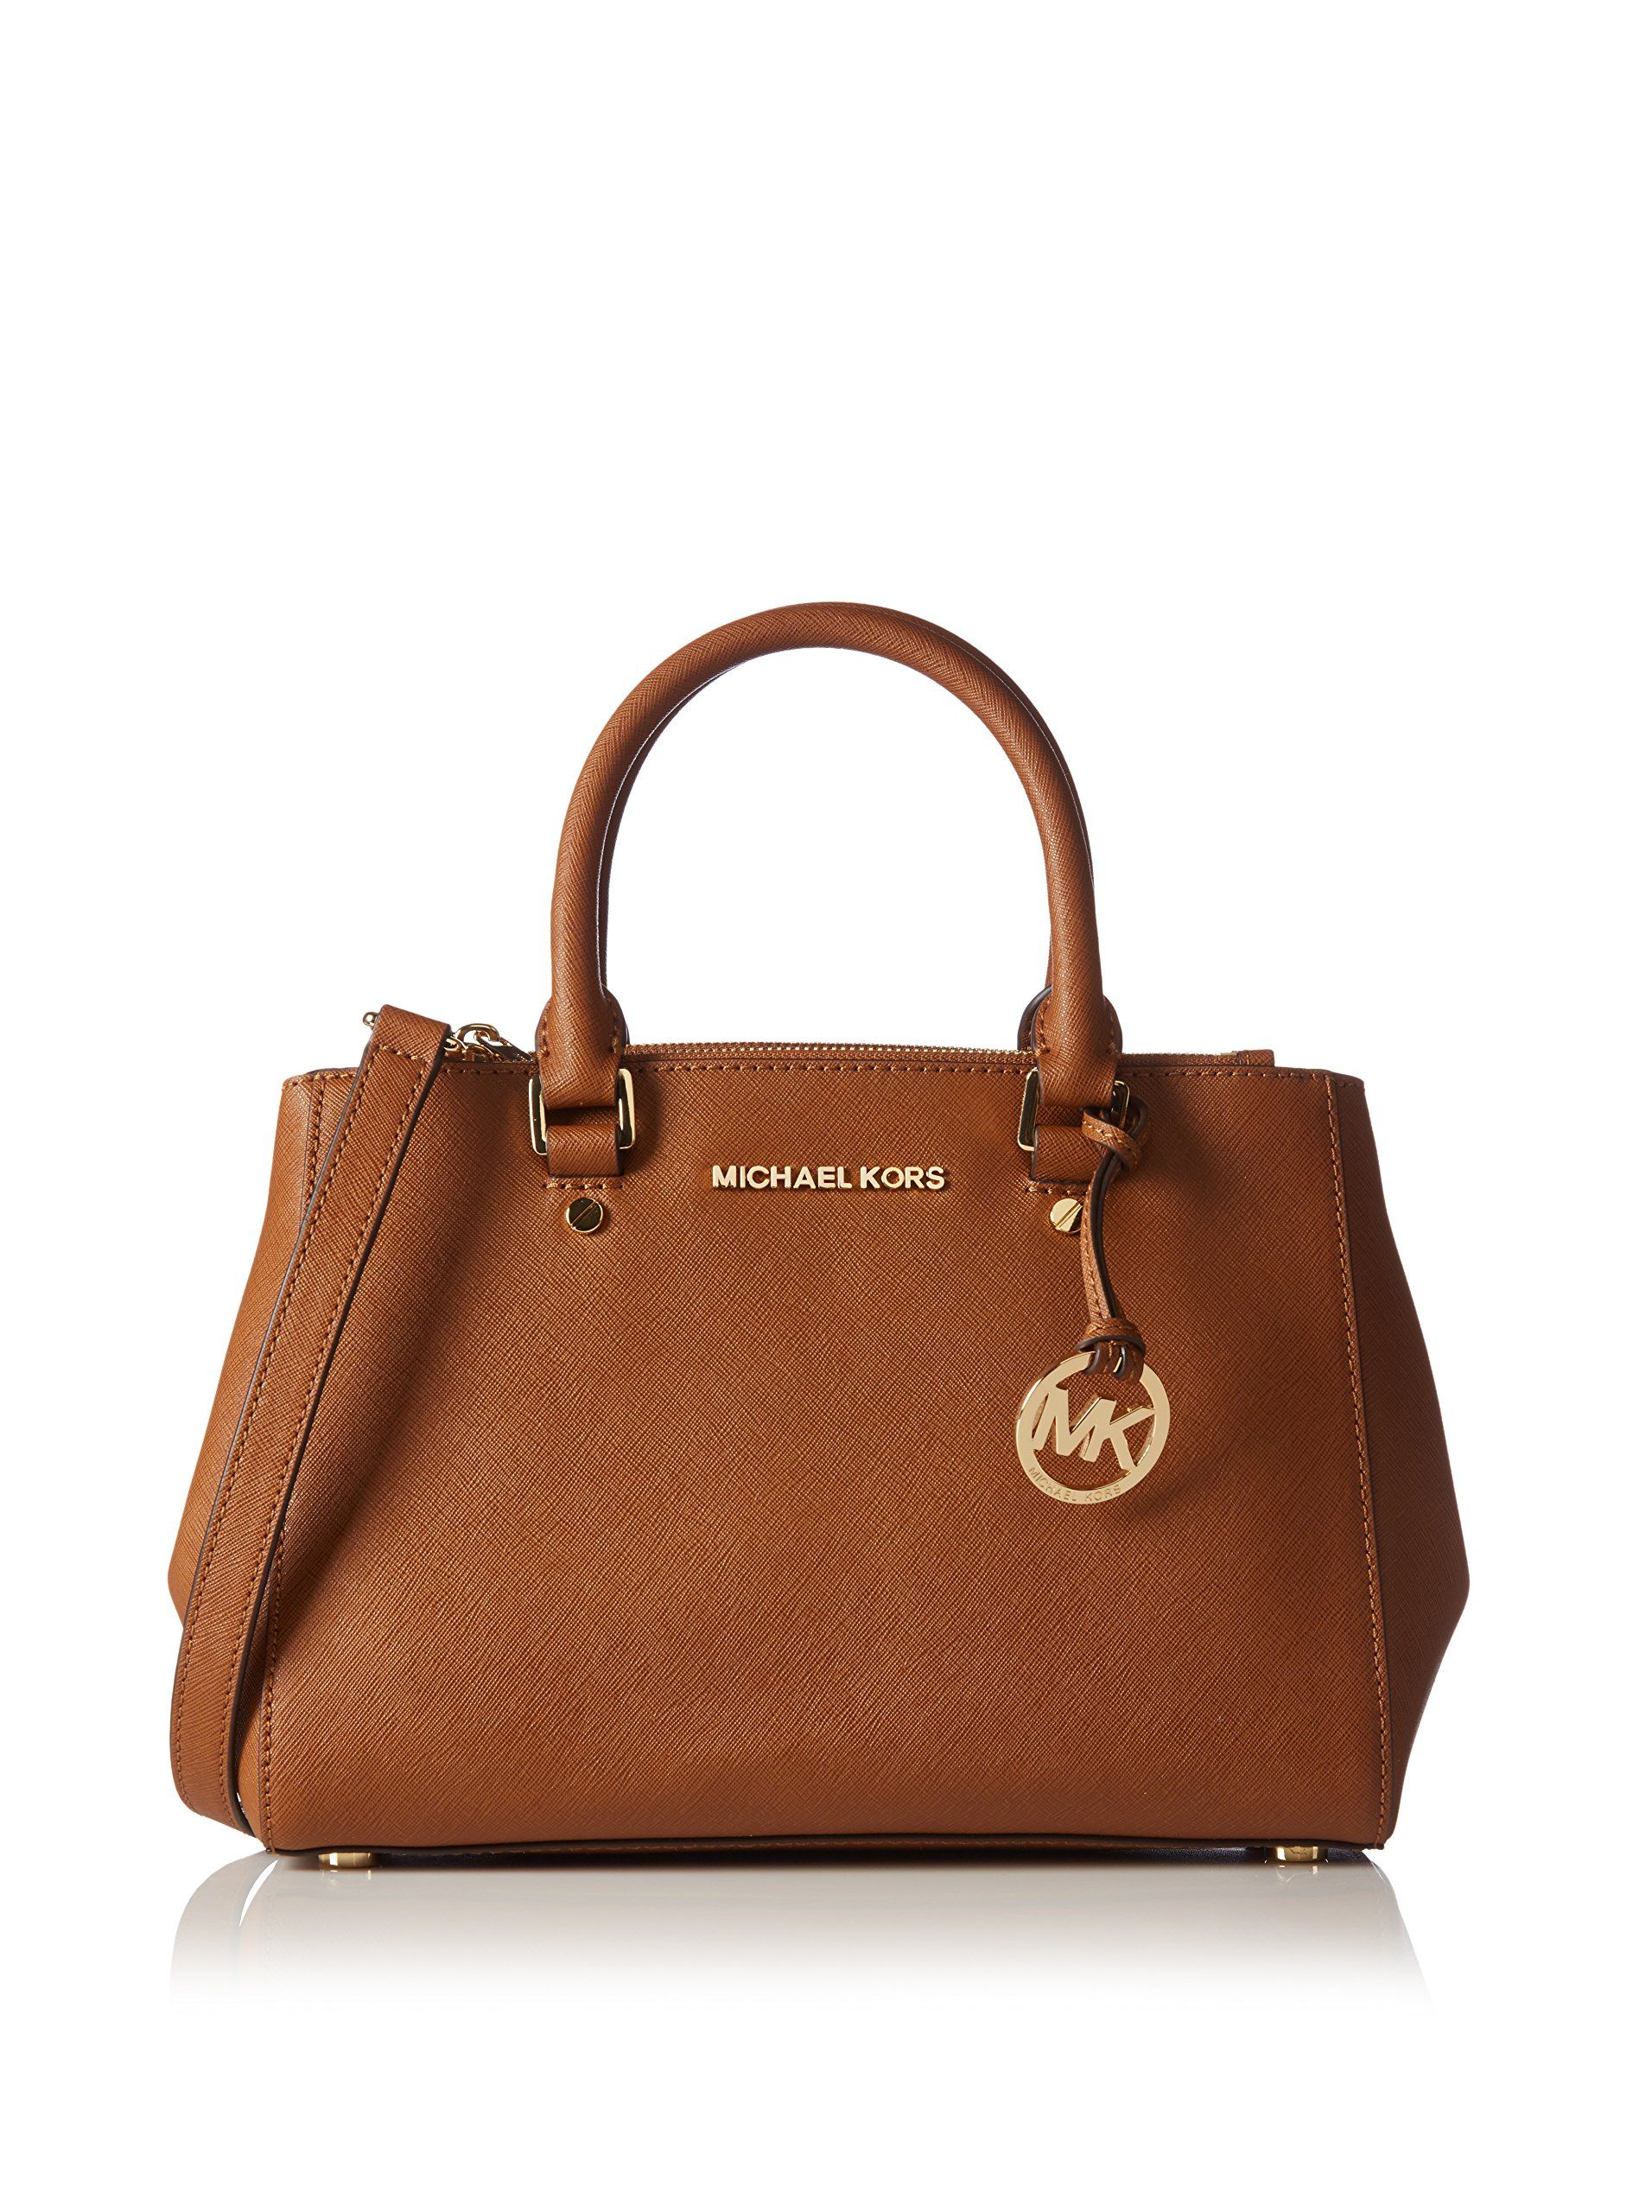 2cd0608cc960 Amazon.com: Michael Kors Sutton Small Saffiano Leather Satchel in Luggage:  Shoes